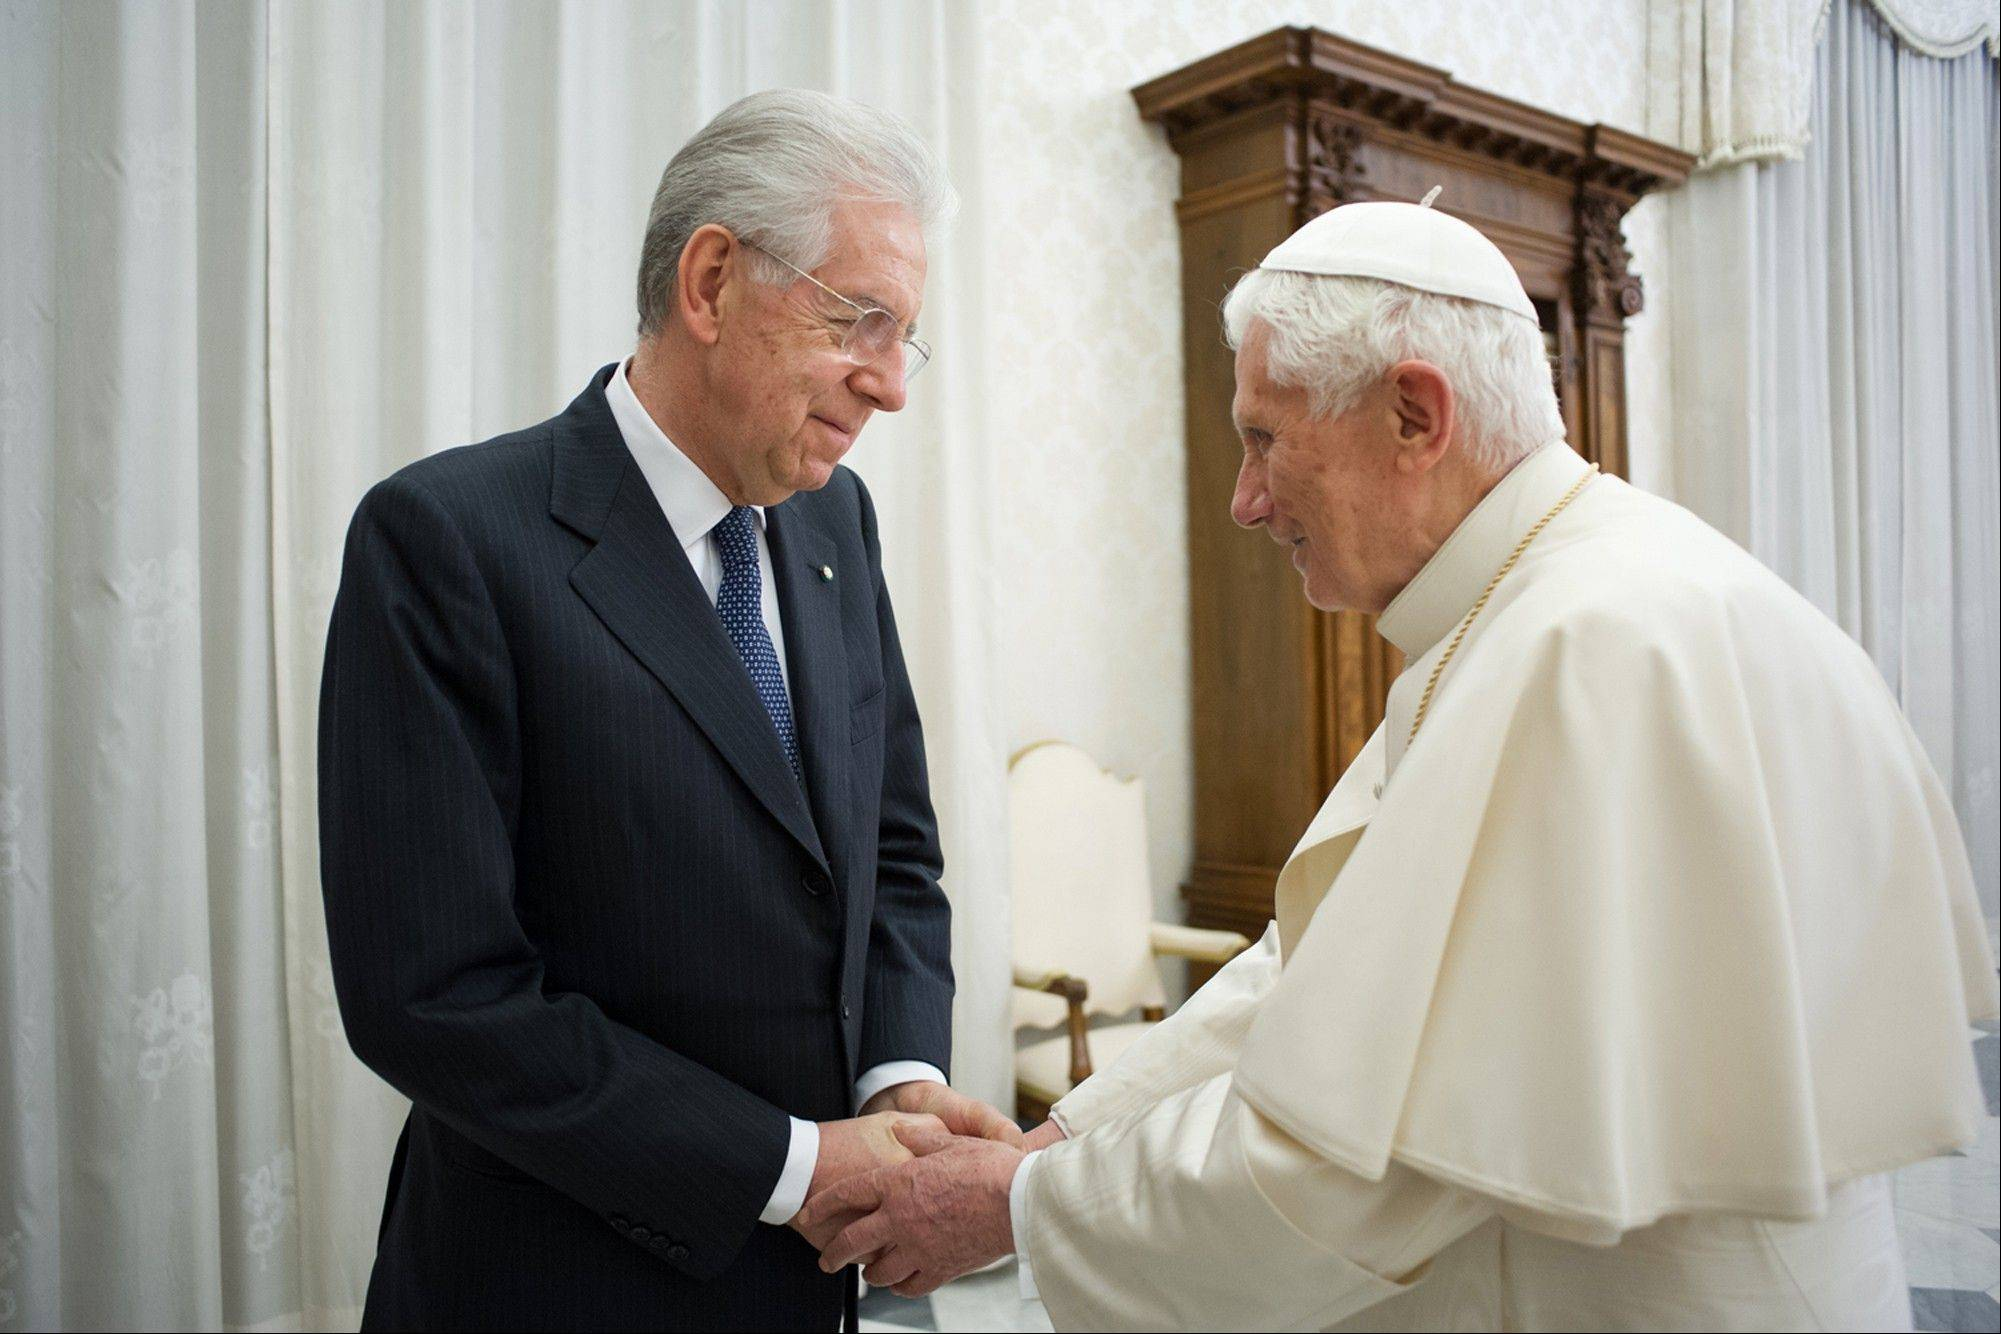 Pope Benedict XVI shakes hands Saturday with Italian Premier Mario Monti during a private audience at the Vatican.